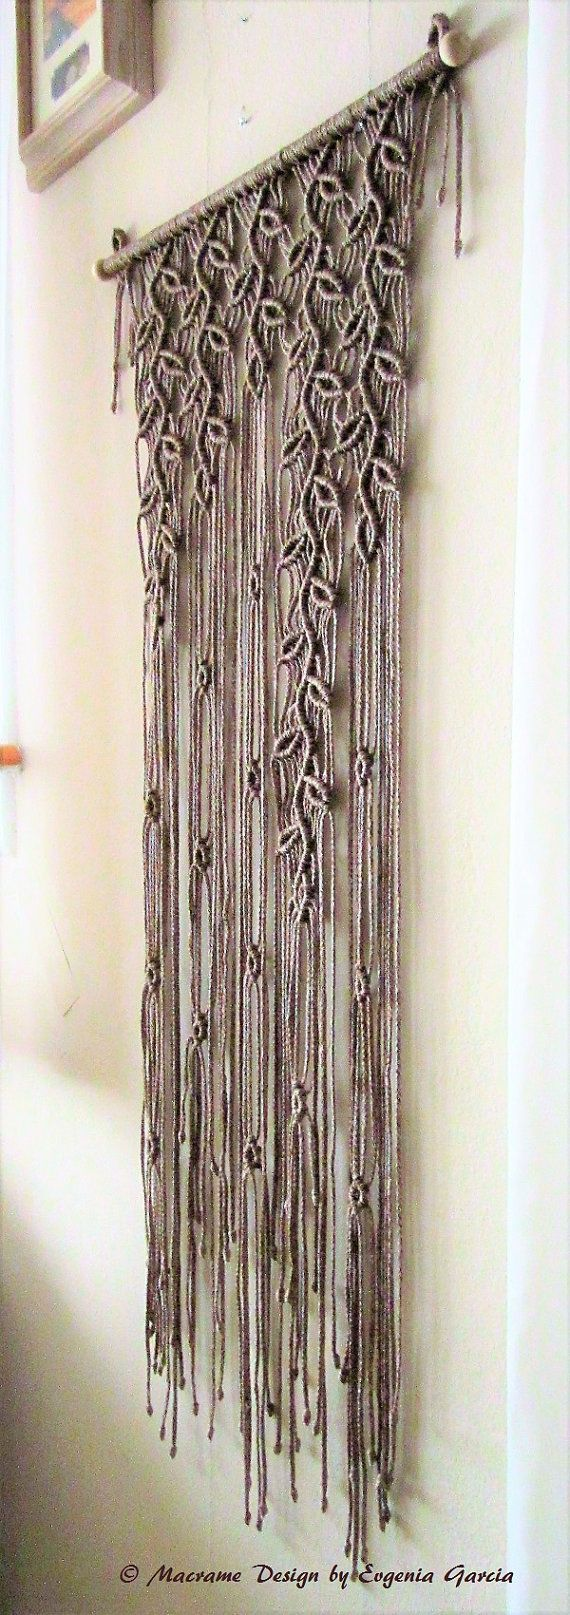 colgante de pared de macrame ramitas de 5 decoraci n cenefas. Black Bedroom Furniture Sets. Home Design Ideas